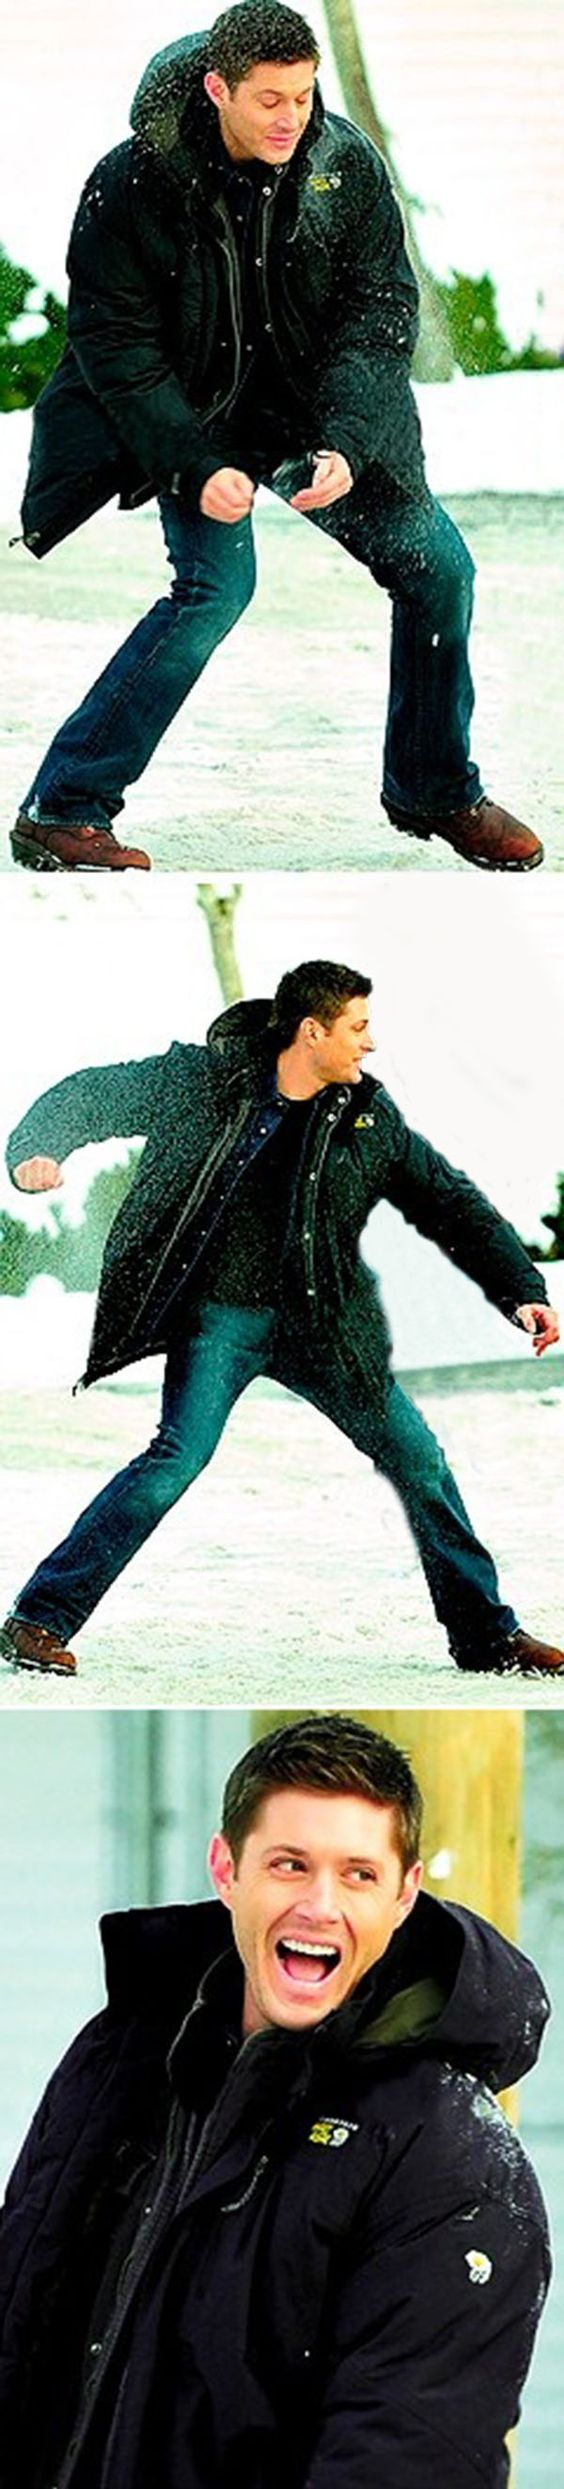 Jensen Ackles being cute between the scenes and making me wish it would snow...